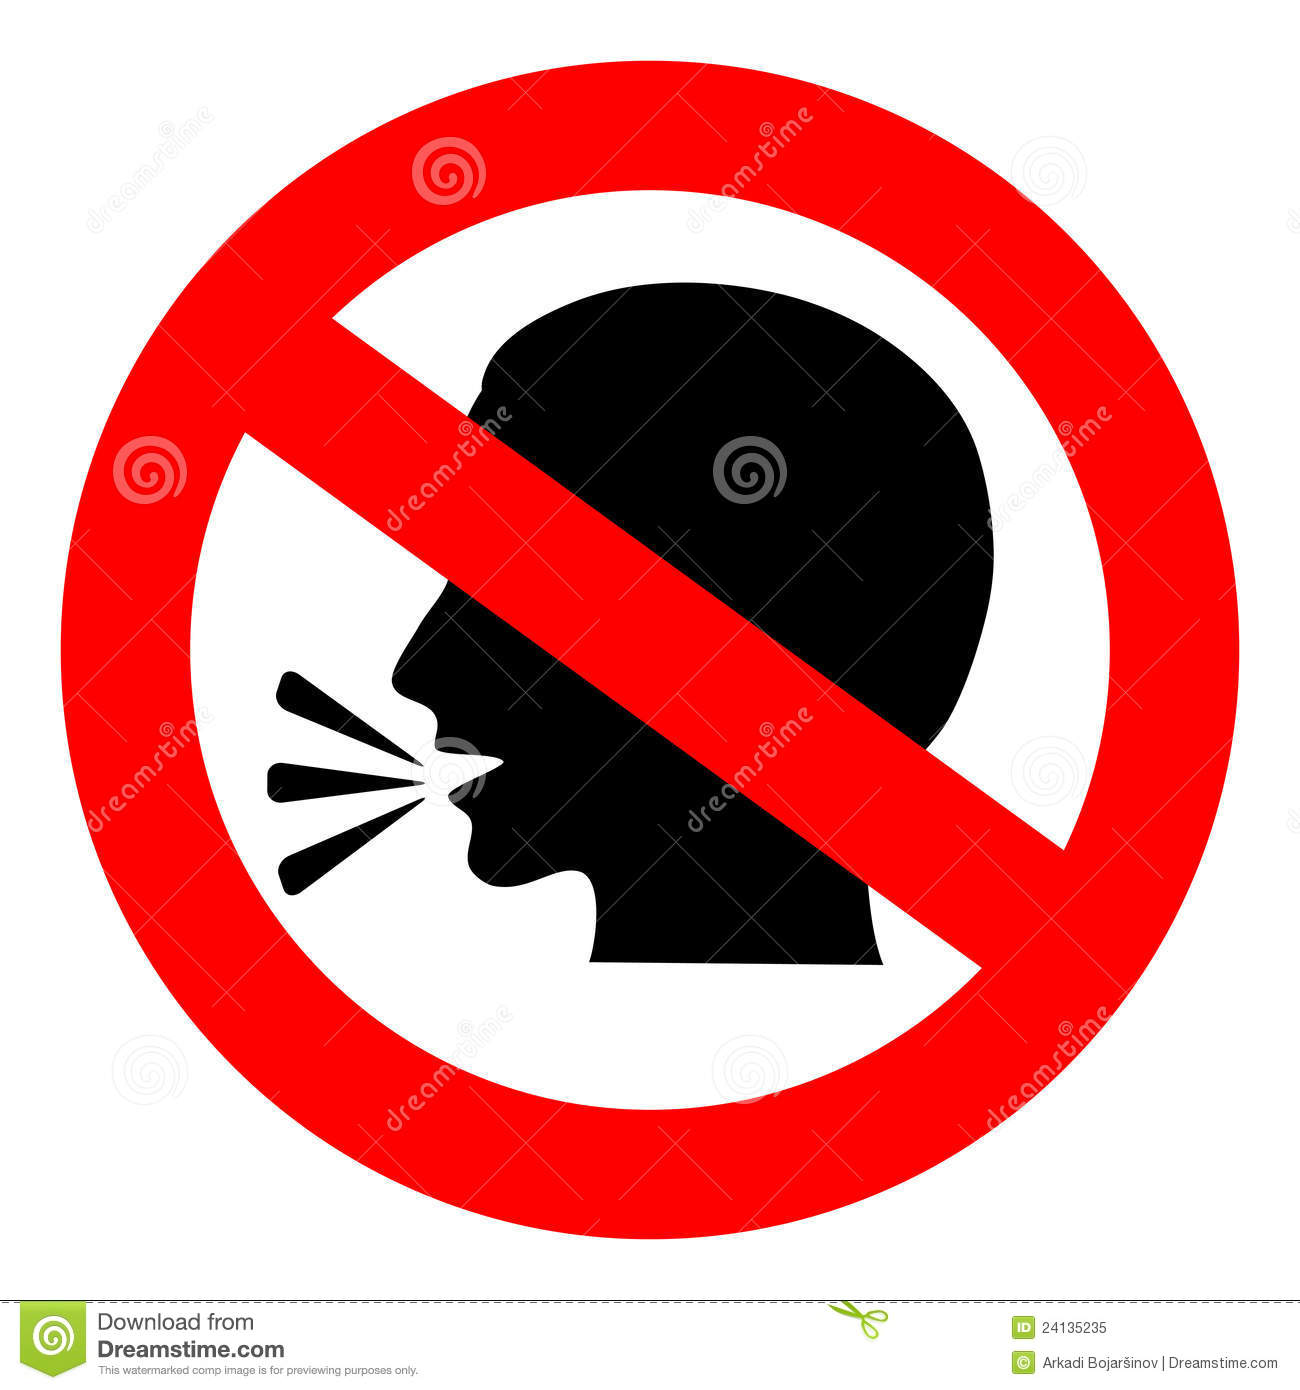 No Talking Sign Royalty Free Stock Photo - Image: 24135235